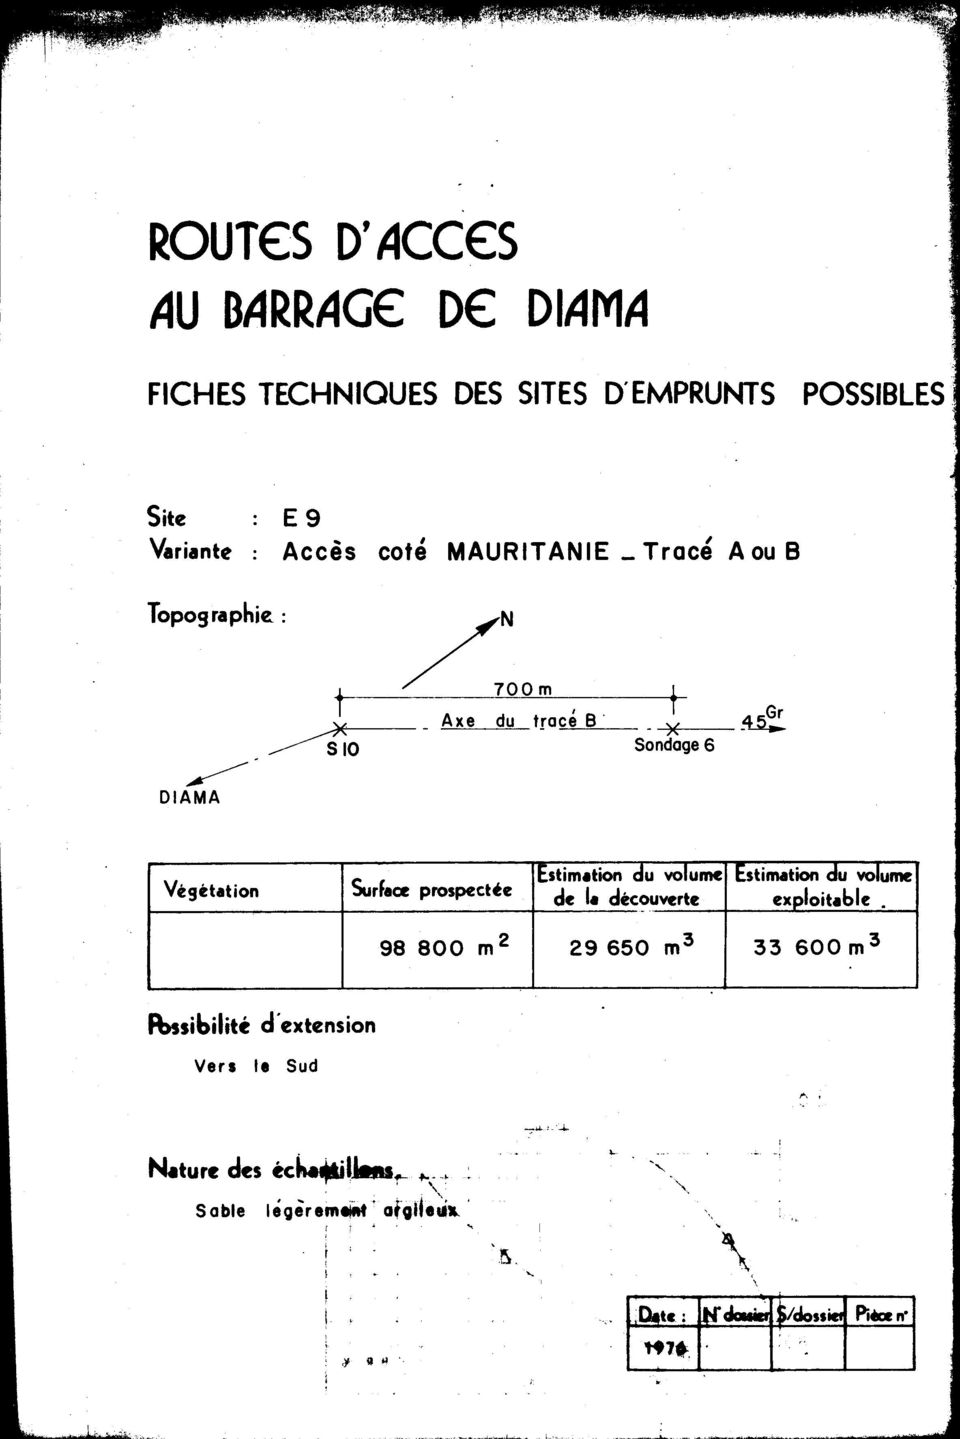 0 _Axe du tracée _X ~ S 0 Sondage 6 Surfaœ prospectée Estimation du volume Estimation du volume de la